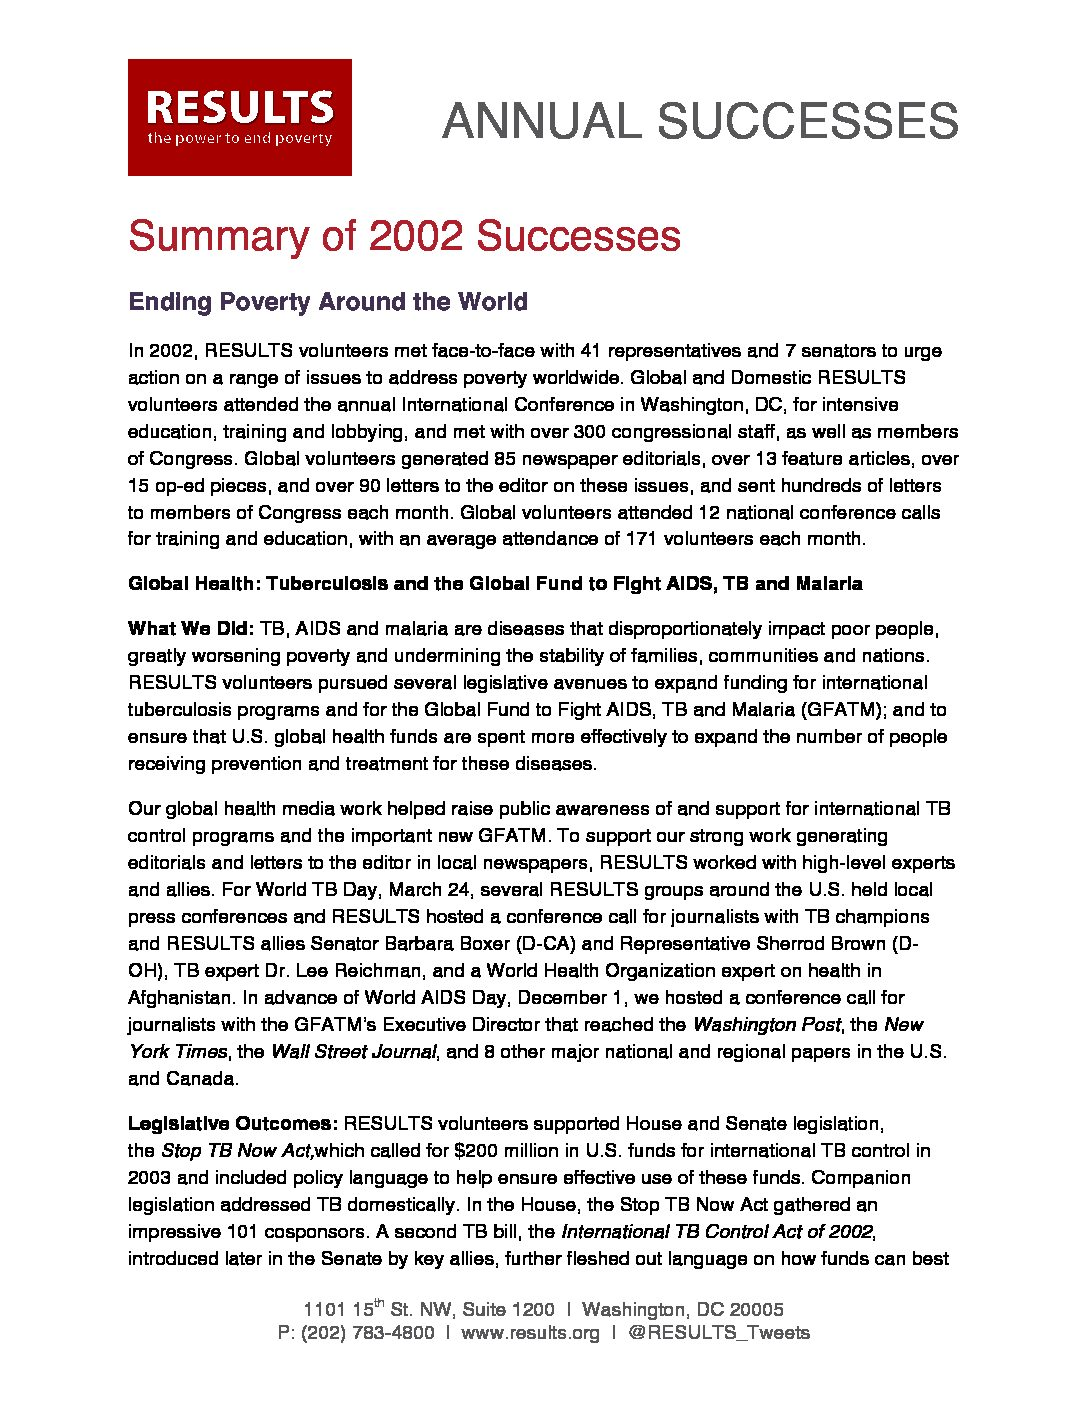 Annual Successes 2002